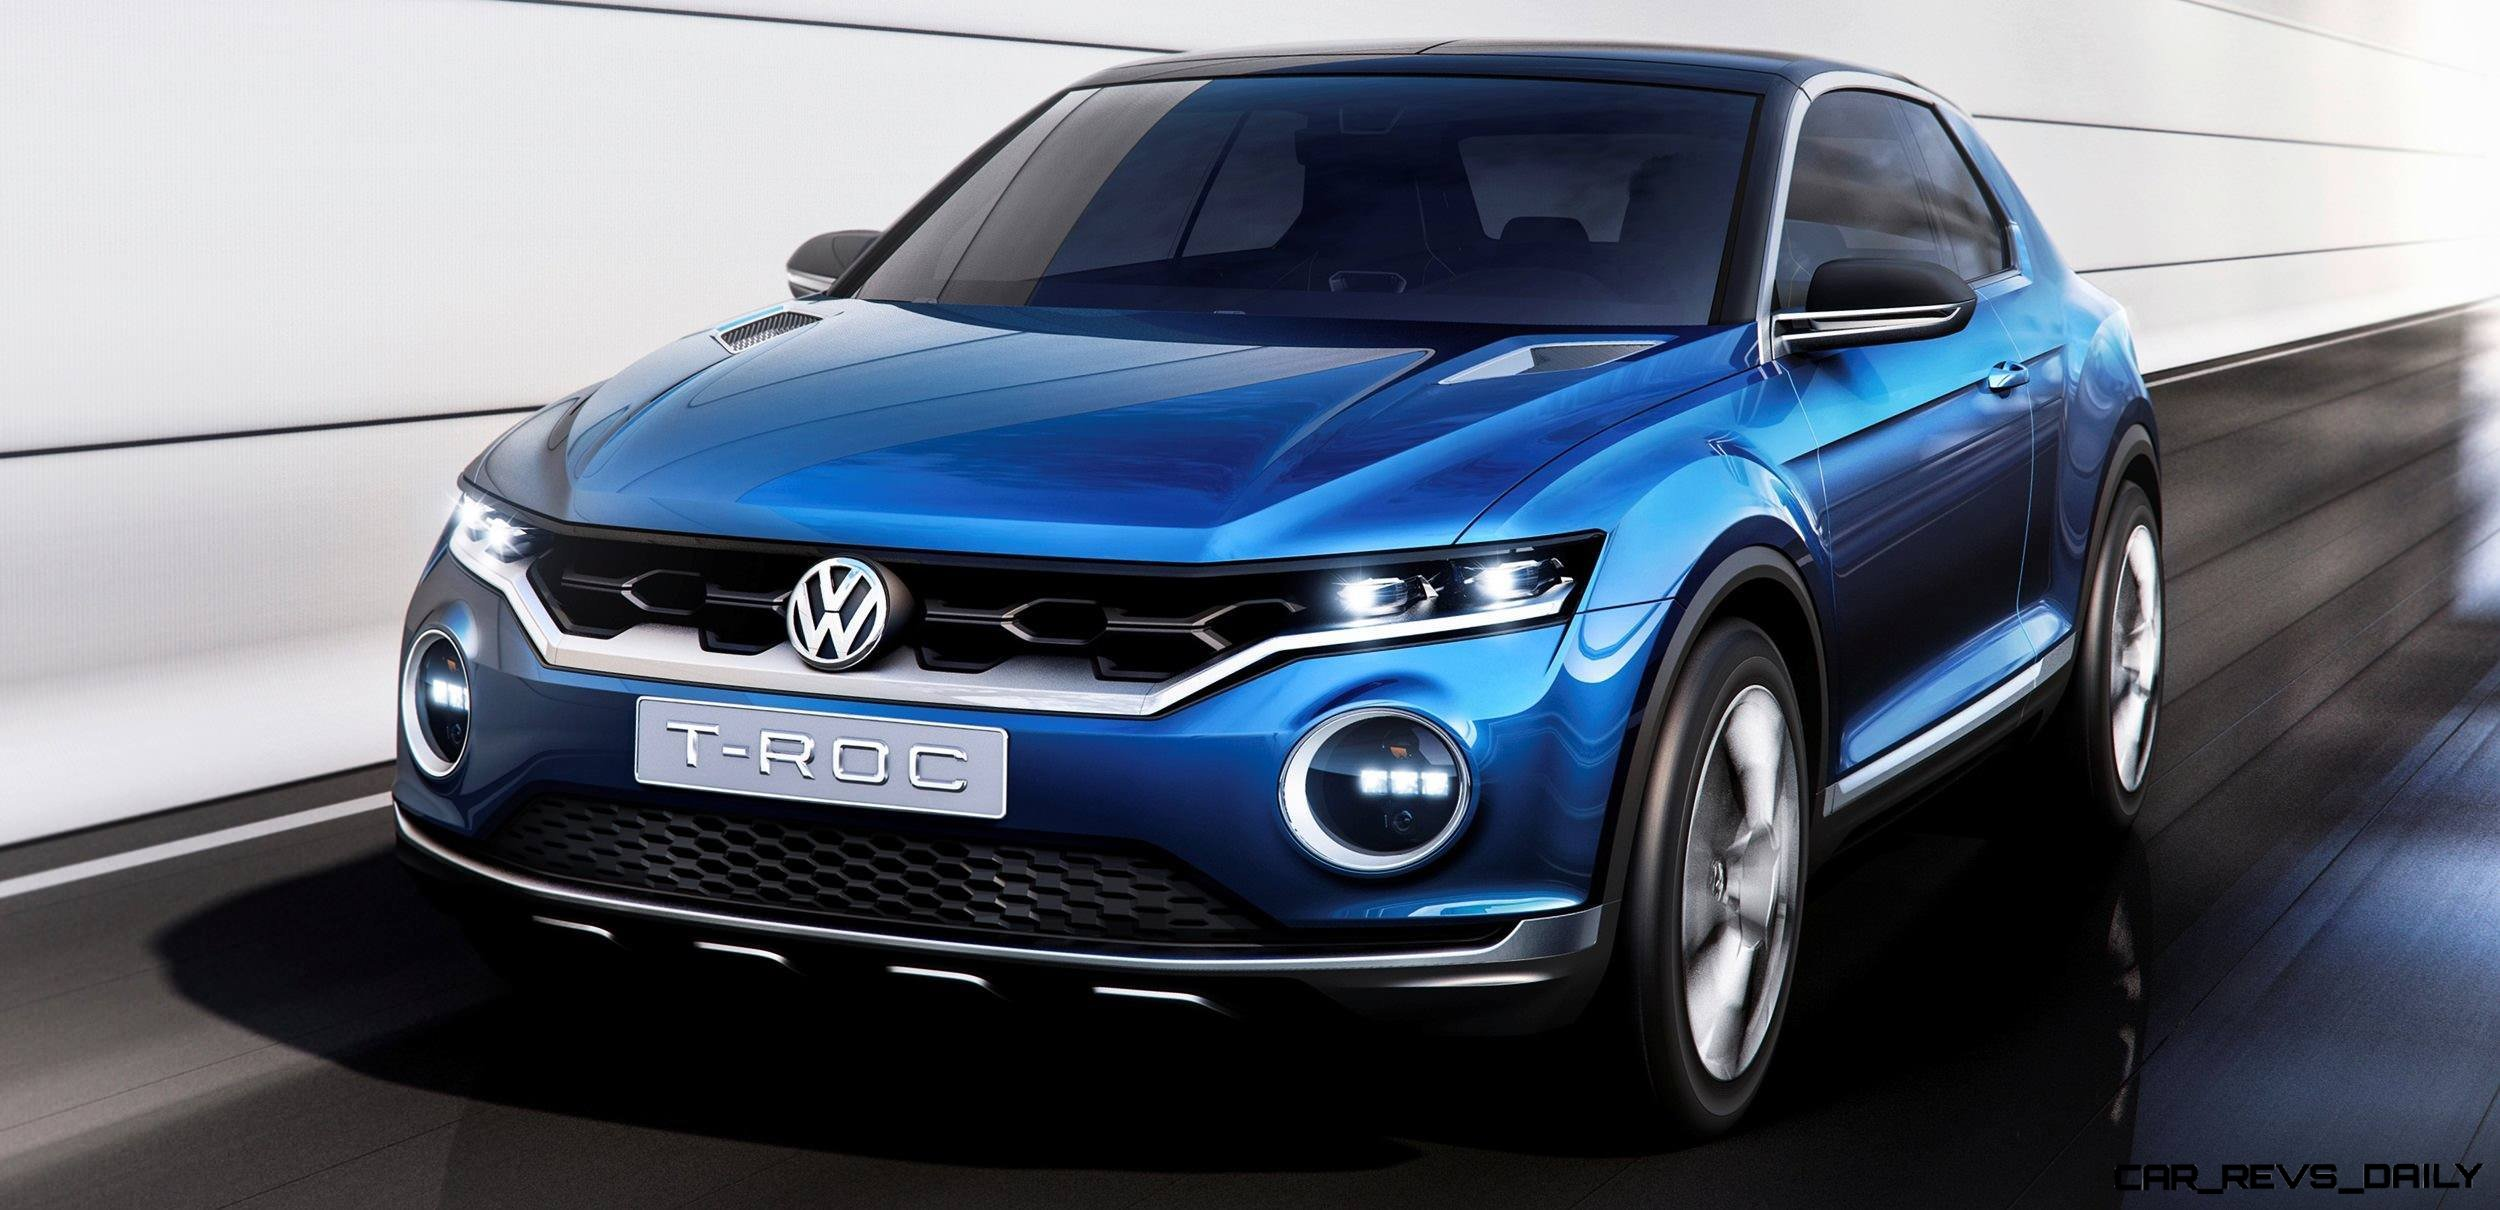 Volkswagen T-ROC Concept in 22 High-Res Images -- A Baja Coupe That Cleans Up Nicely for Saturday Nights in Town 3